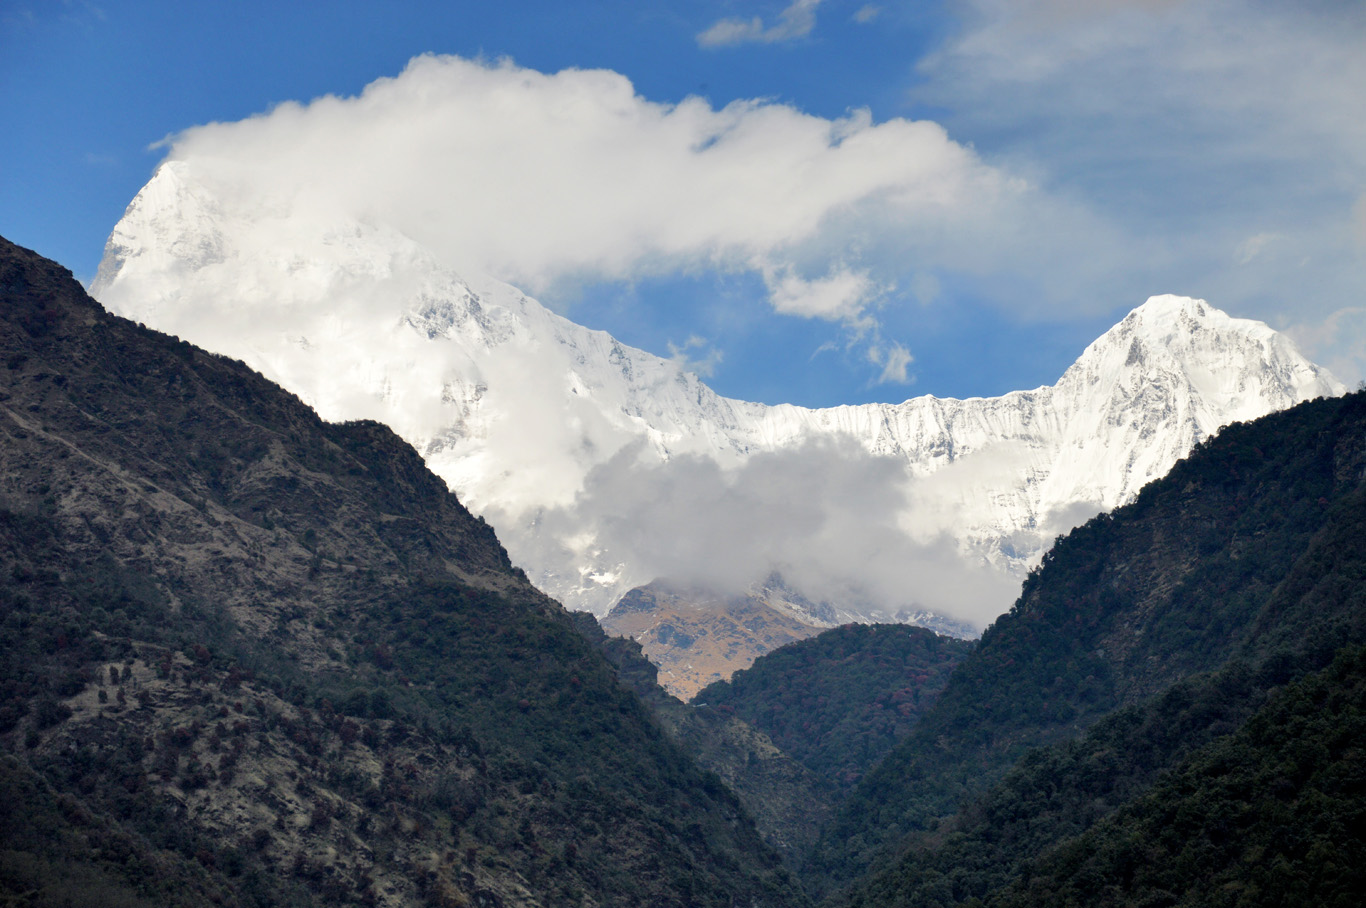 Himalayas - the view from the guest house